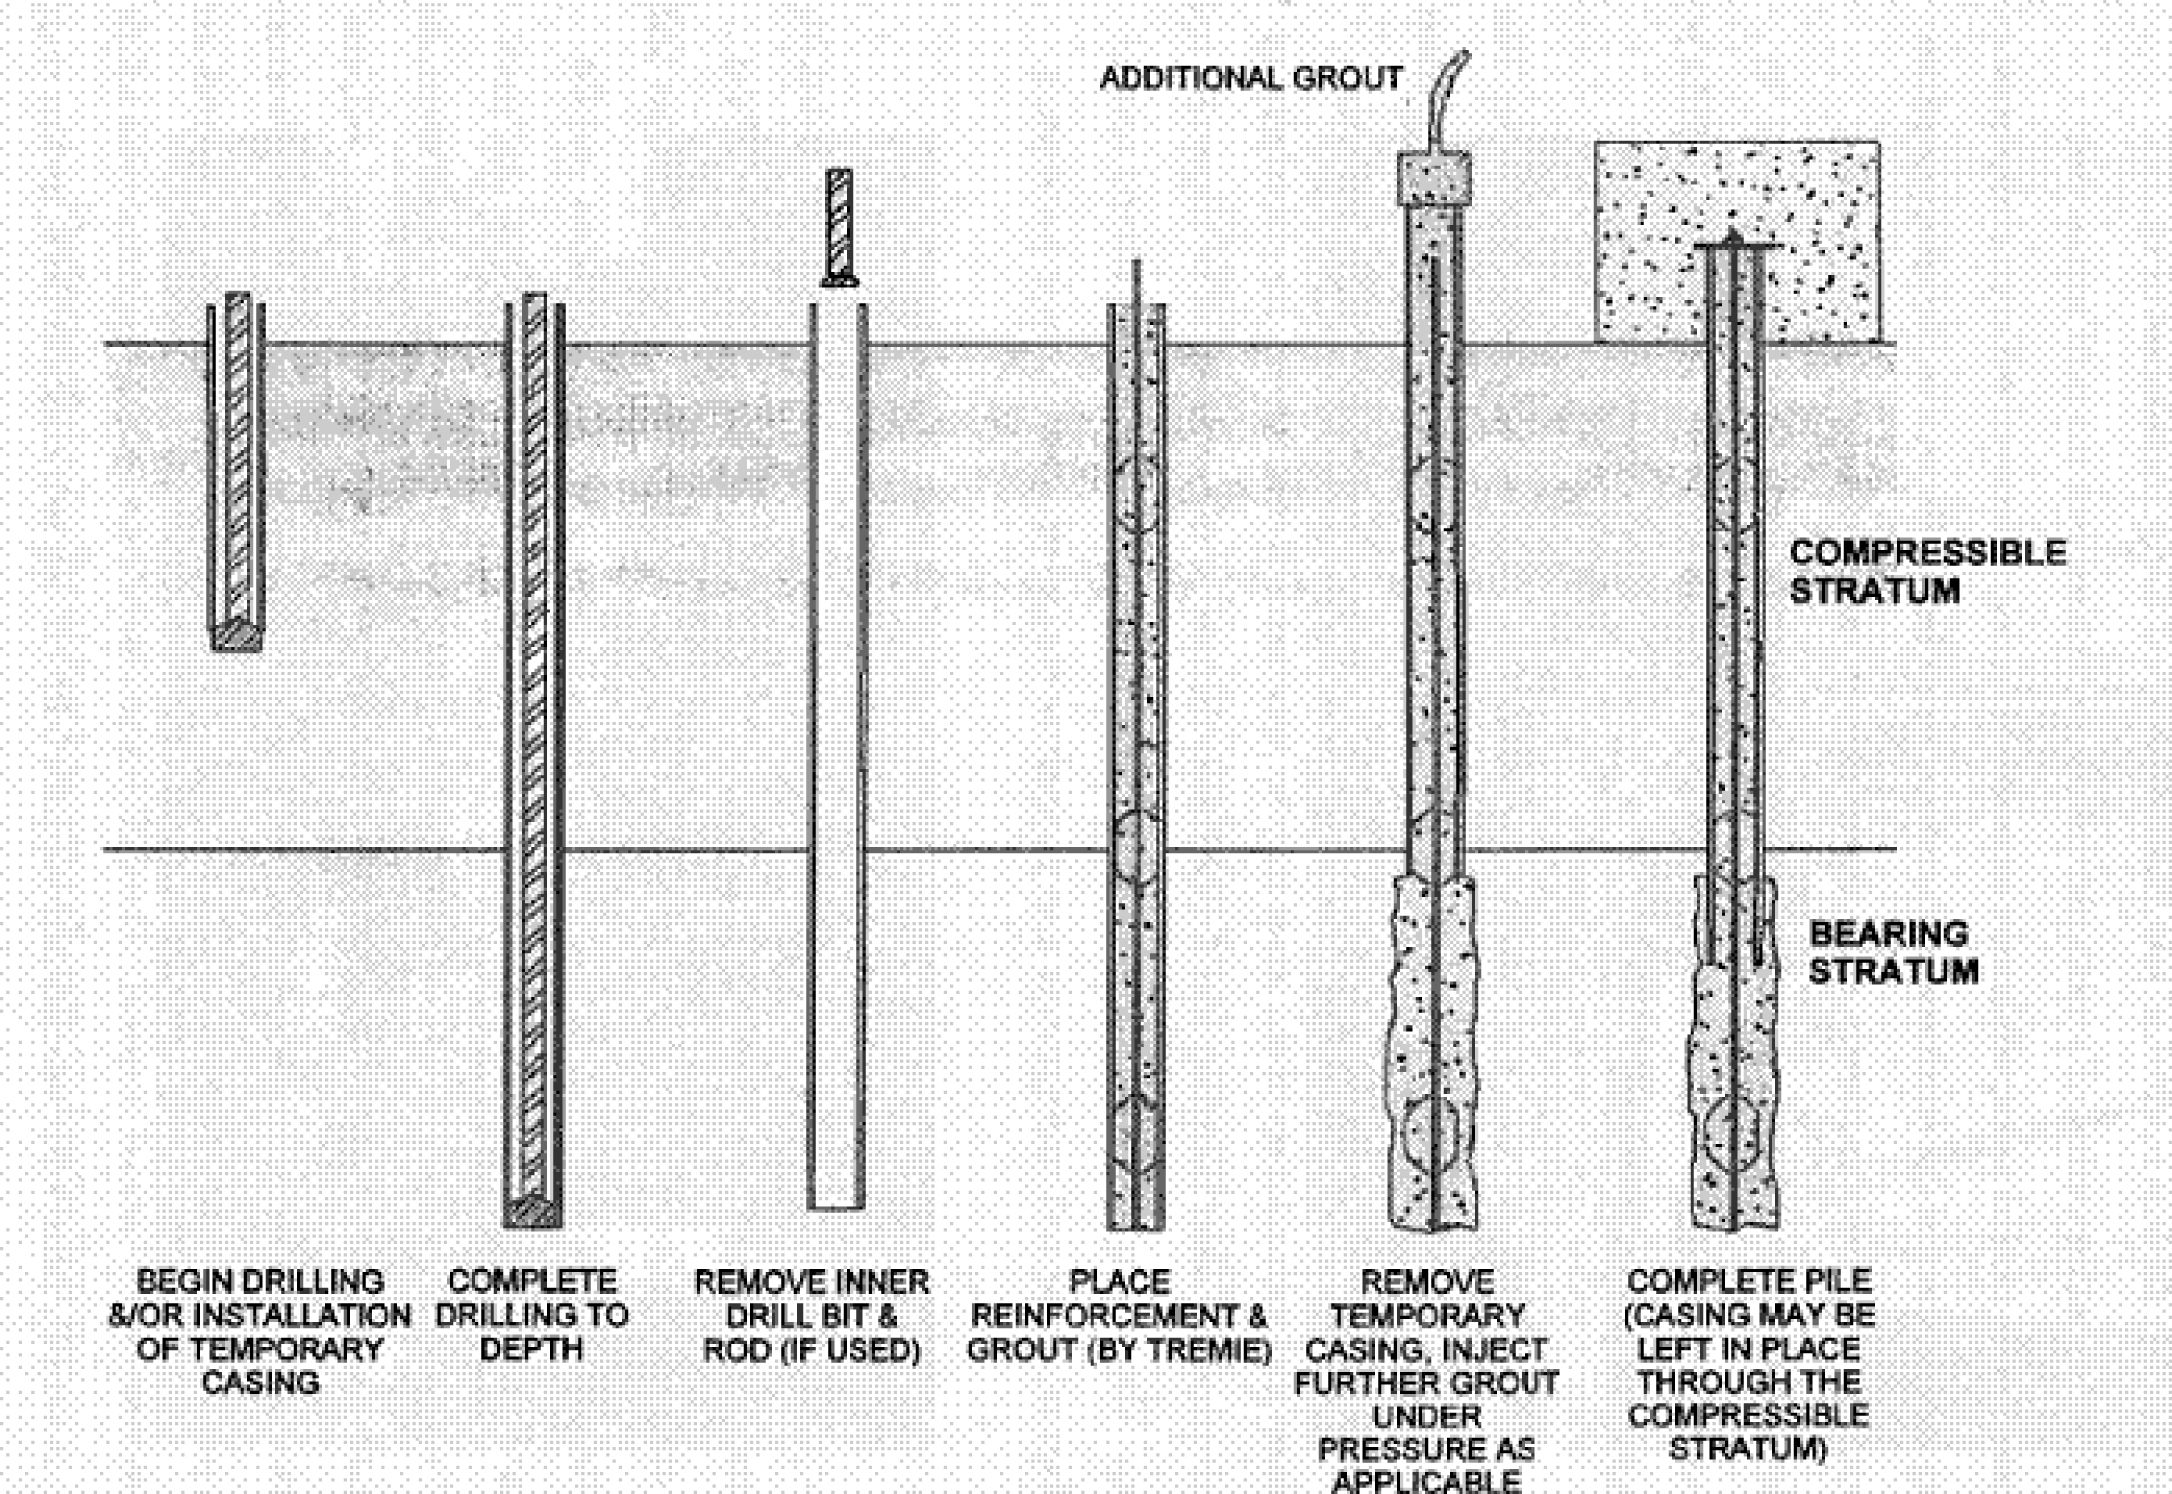 MICROPILES (Pile Foundation) - Used when hammering of pile